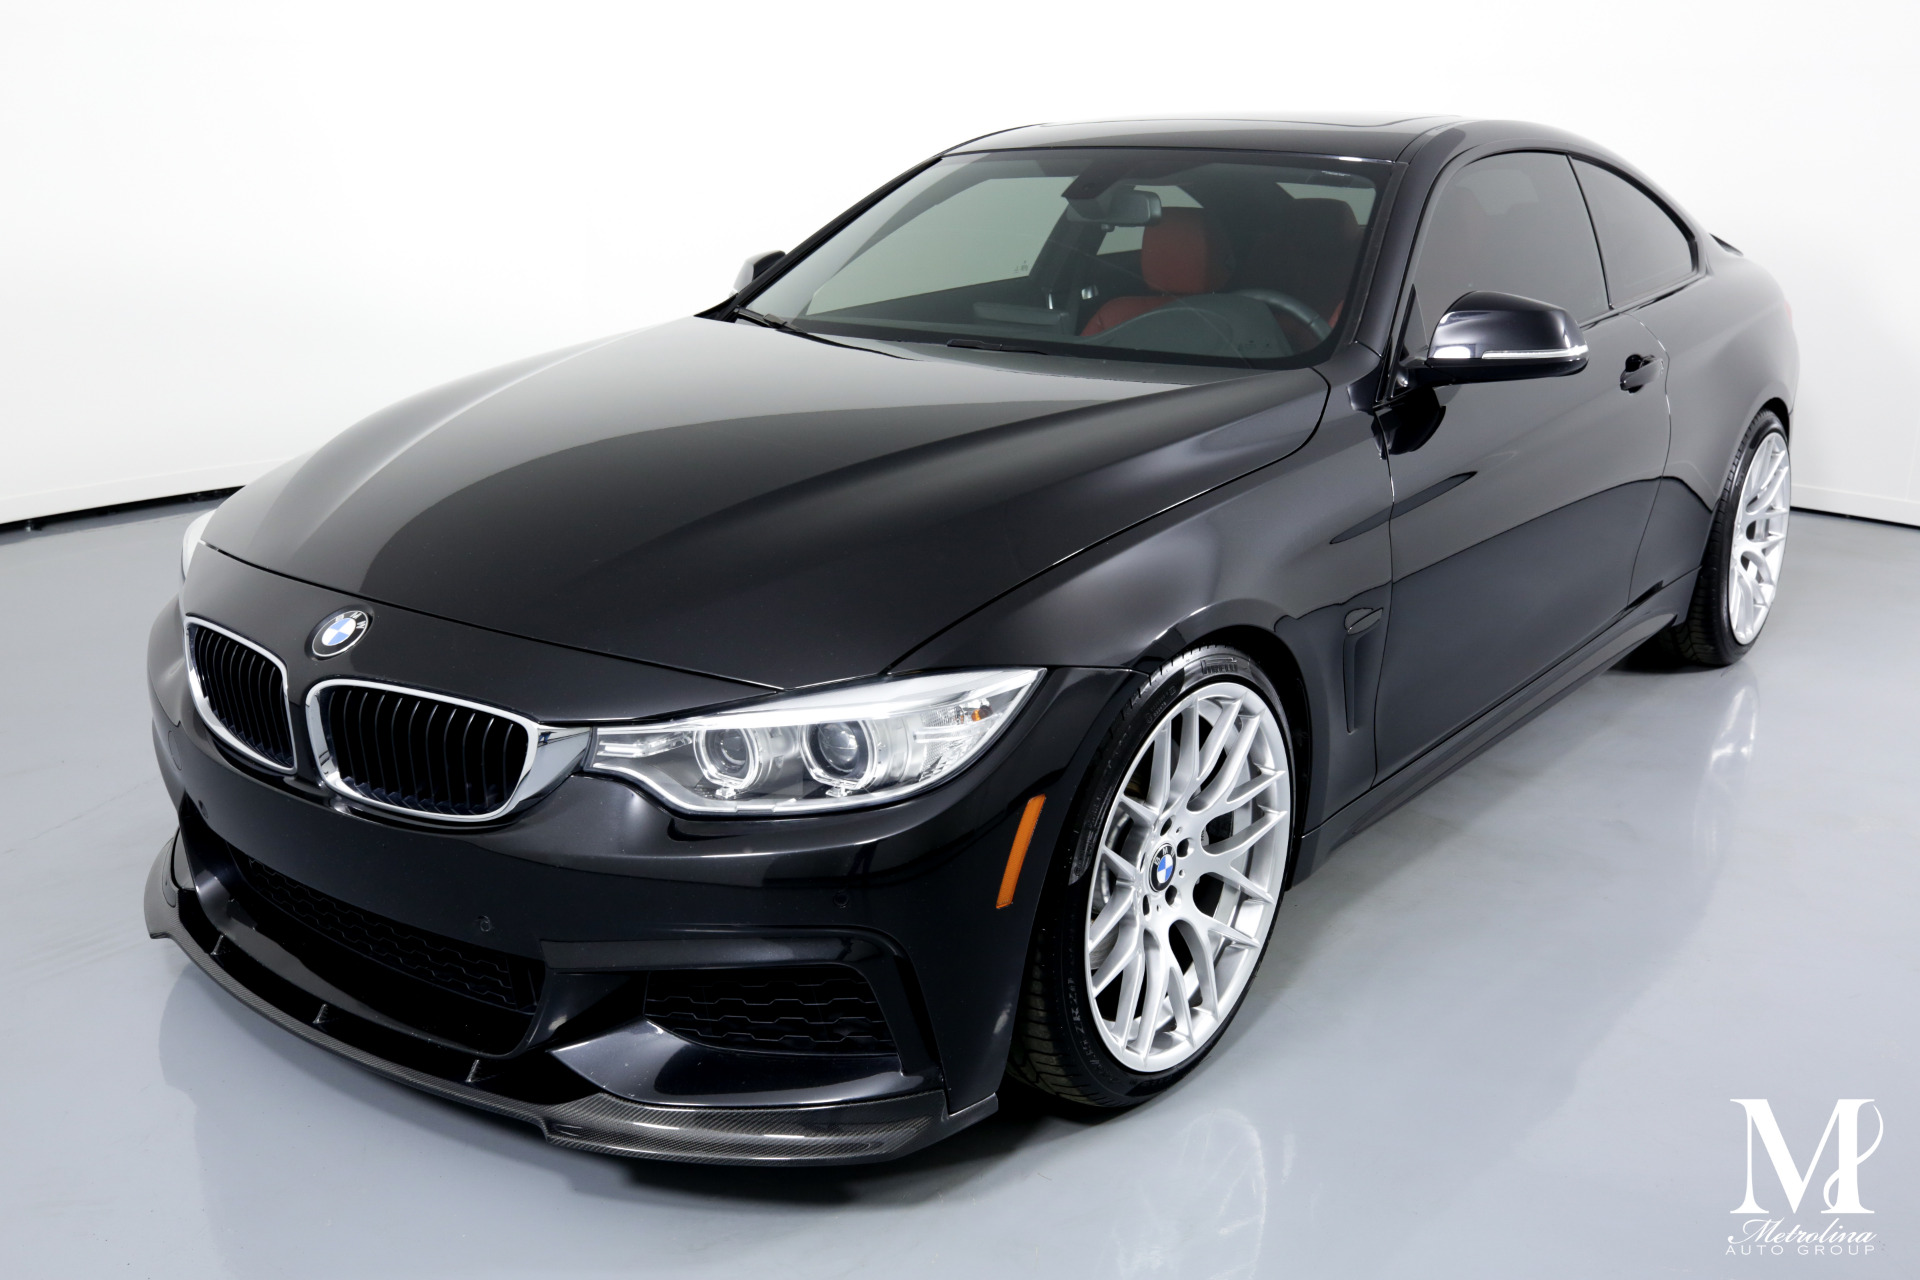 Used 2015 BMW 4 Series 435i for sale Sold at Metrolina Auto Group in Charlotte NC 28217 - 4